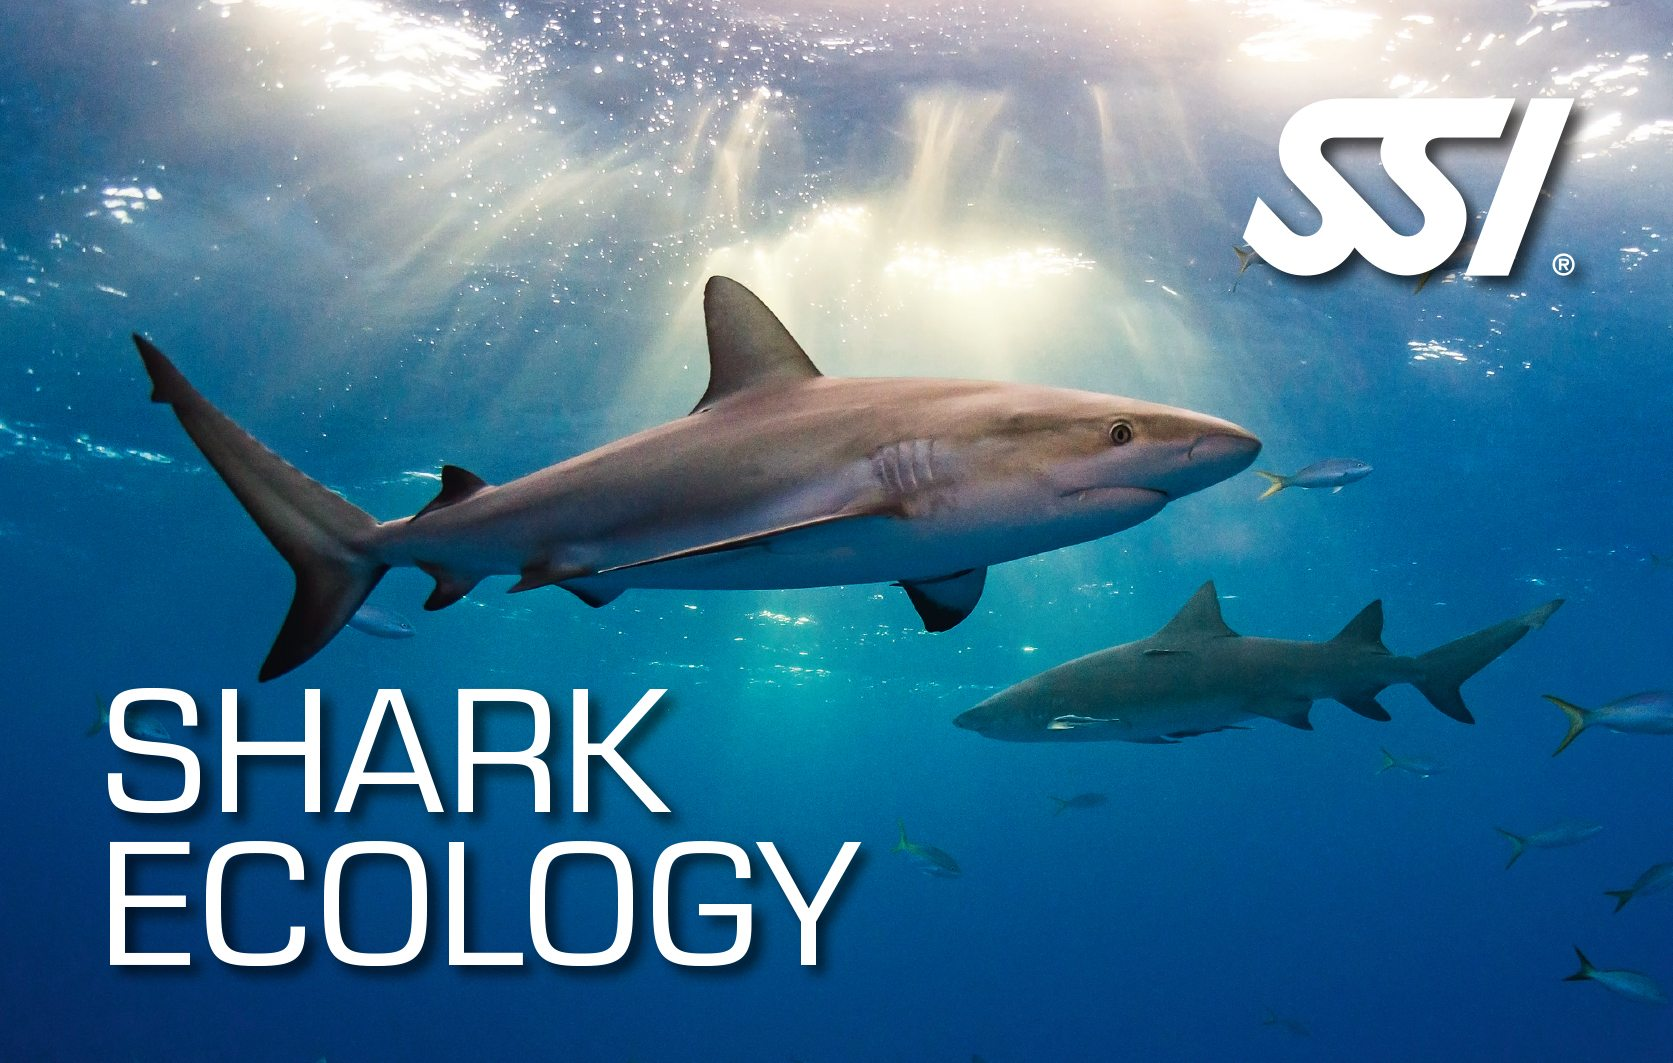 SSI Shark Ecology | SSI Shark Ecology Course | Shark Ecology | Specialty Course | Diving Course | Amazing Dive